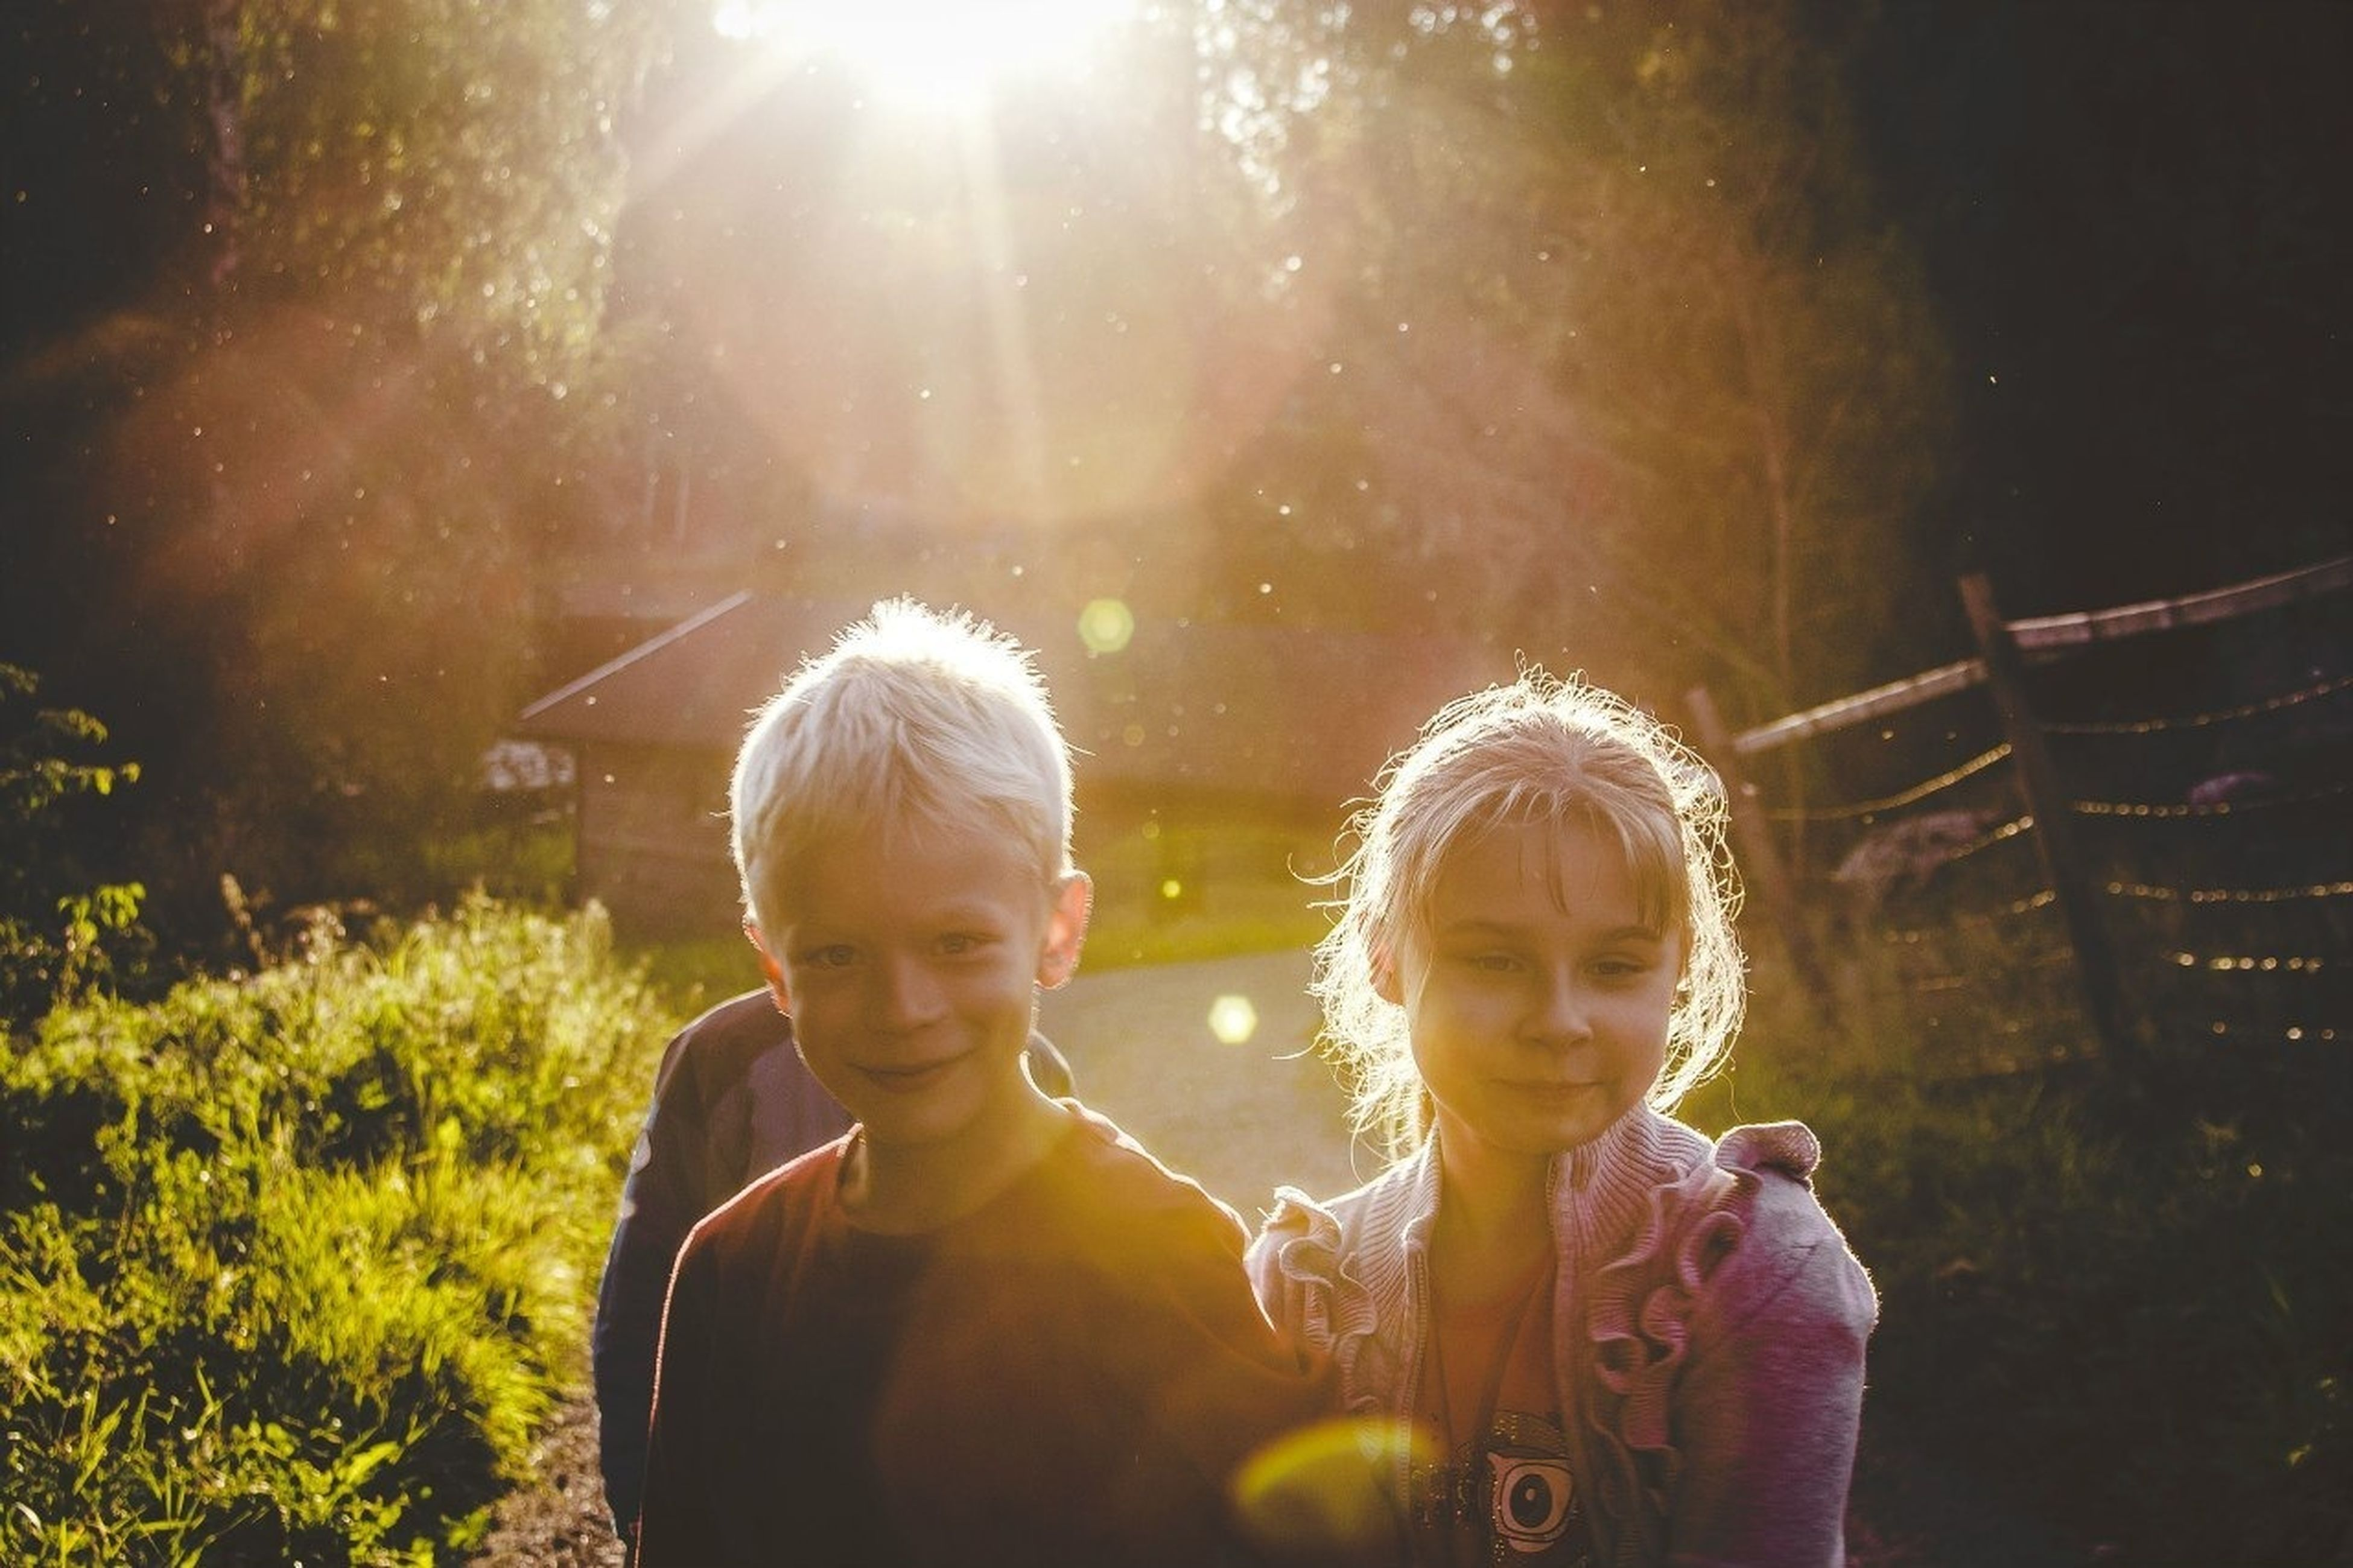 lifestyles, leisure activity, childhood, person, boys, casual clothing, elementary age, togetherness, girls, bonding, tree, love, looking at camera, sunlight, portrait, front view, smiling